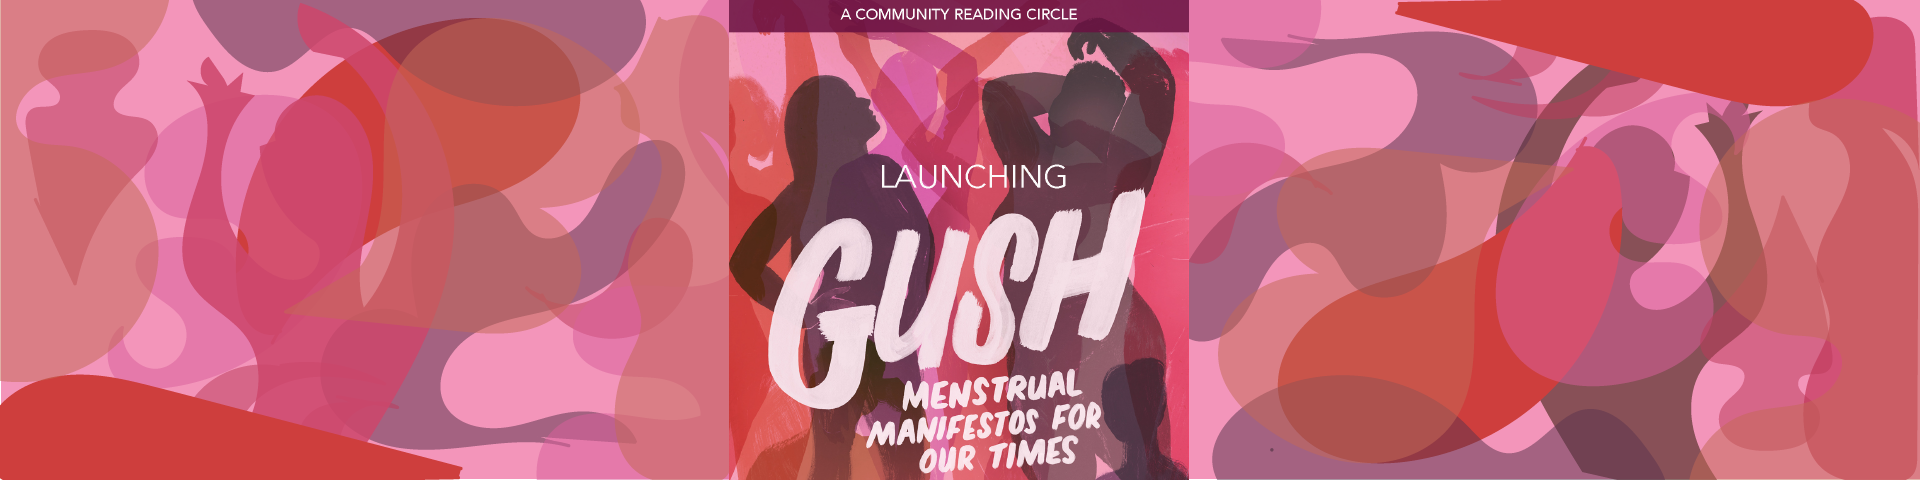 GUSH_booklaunch_slider